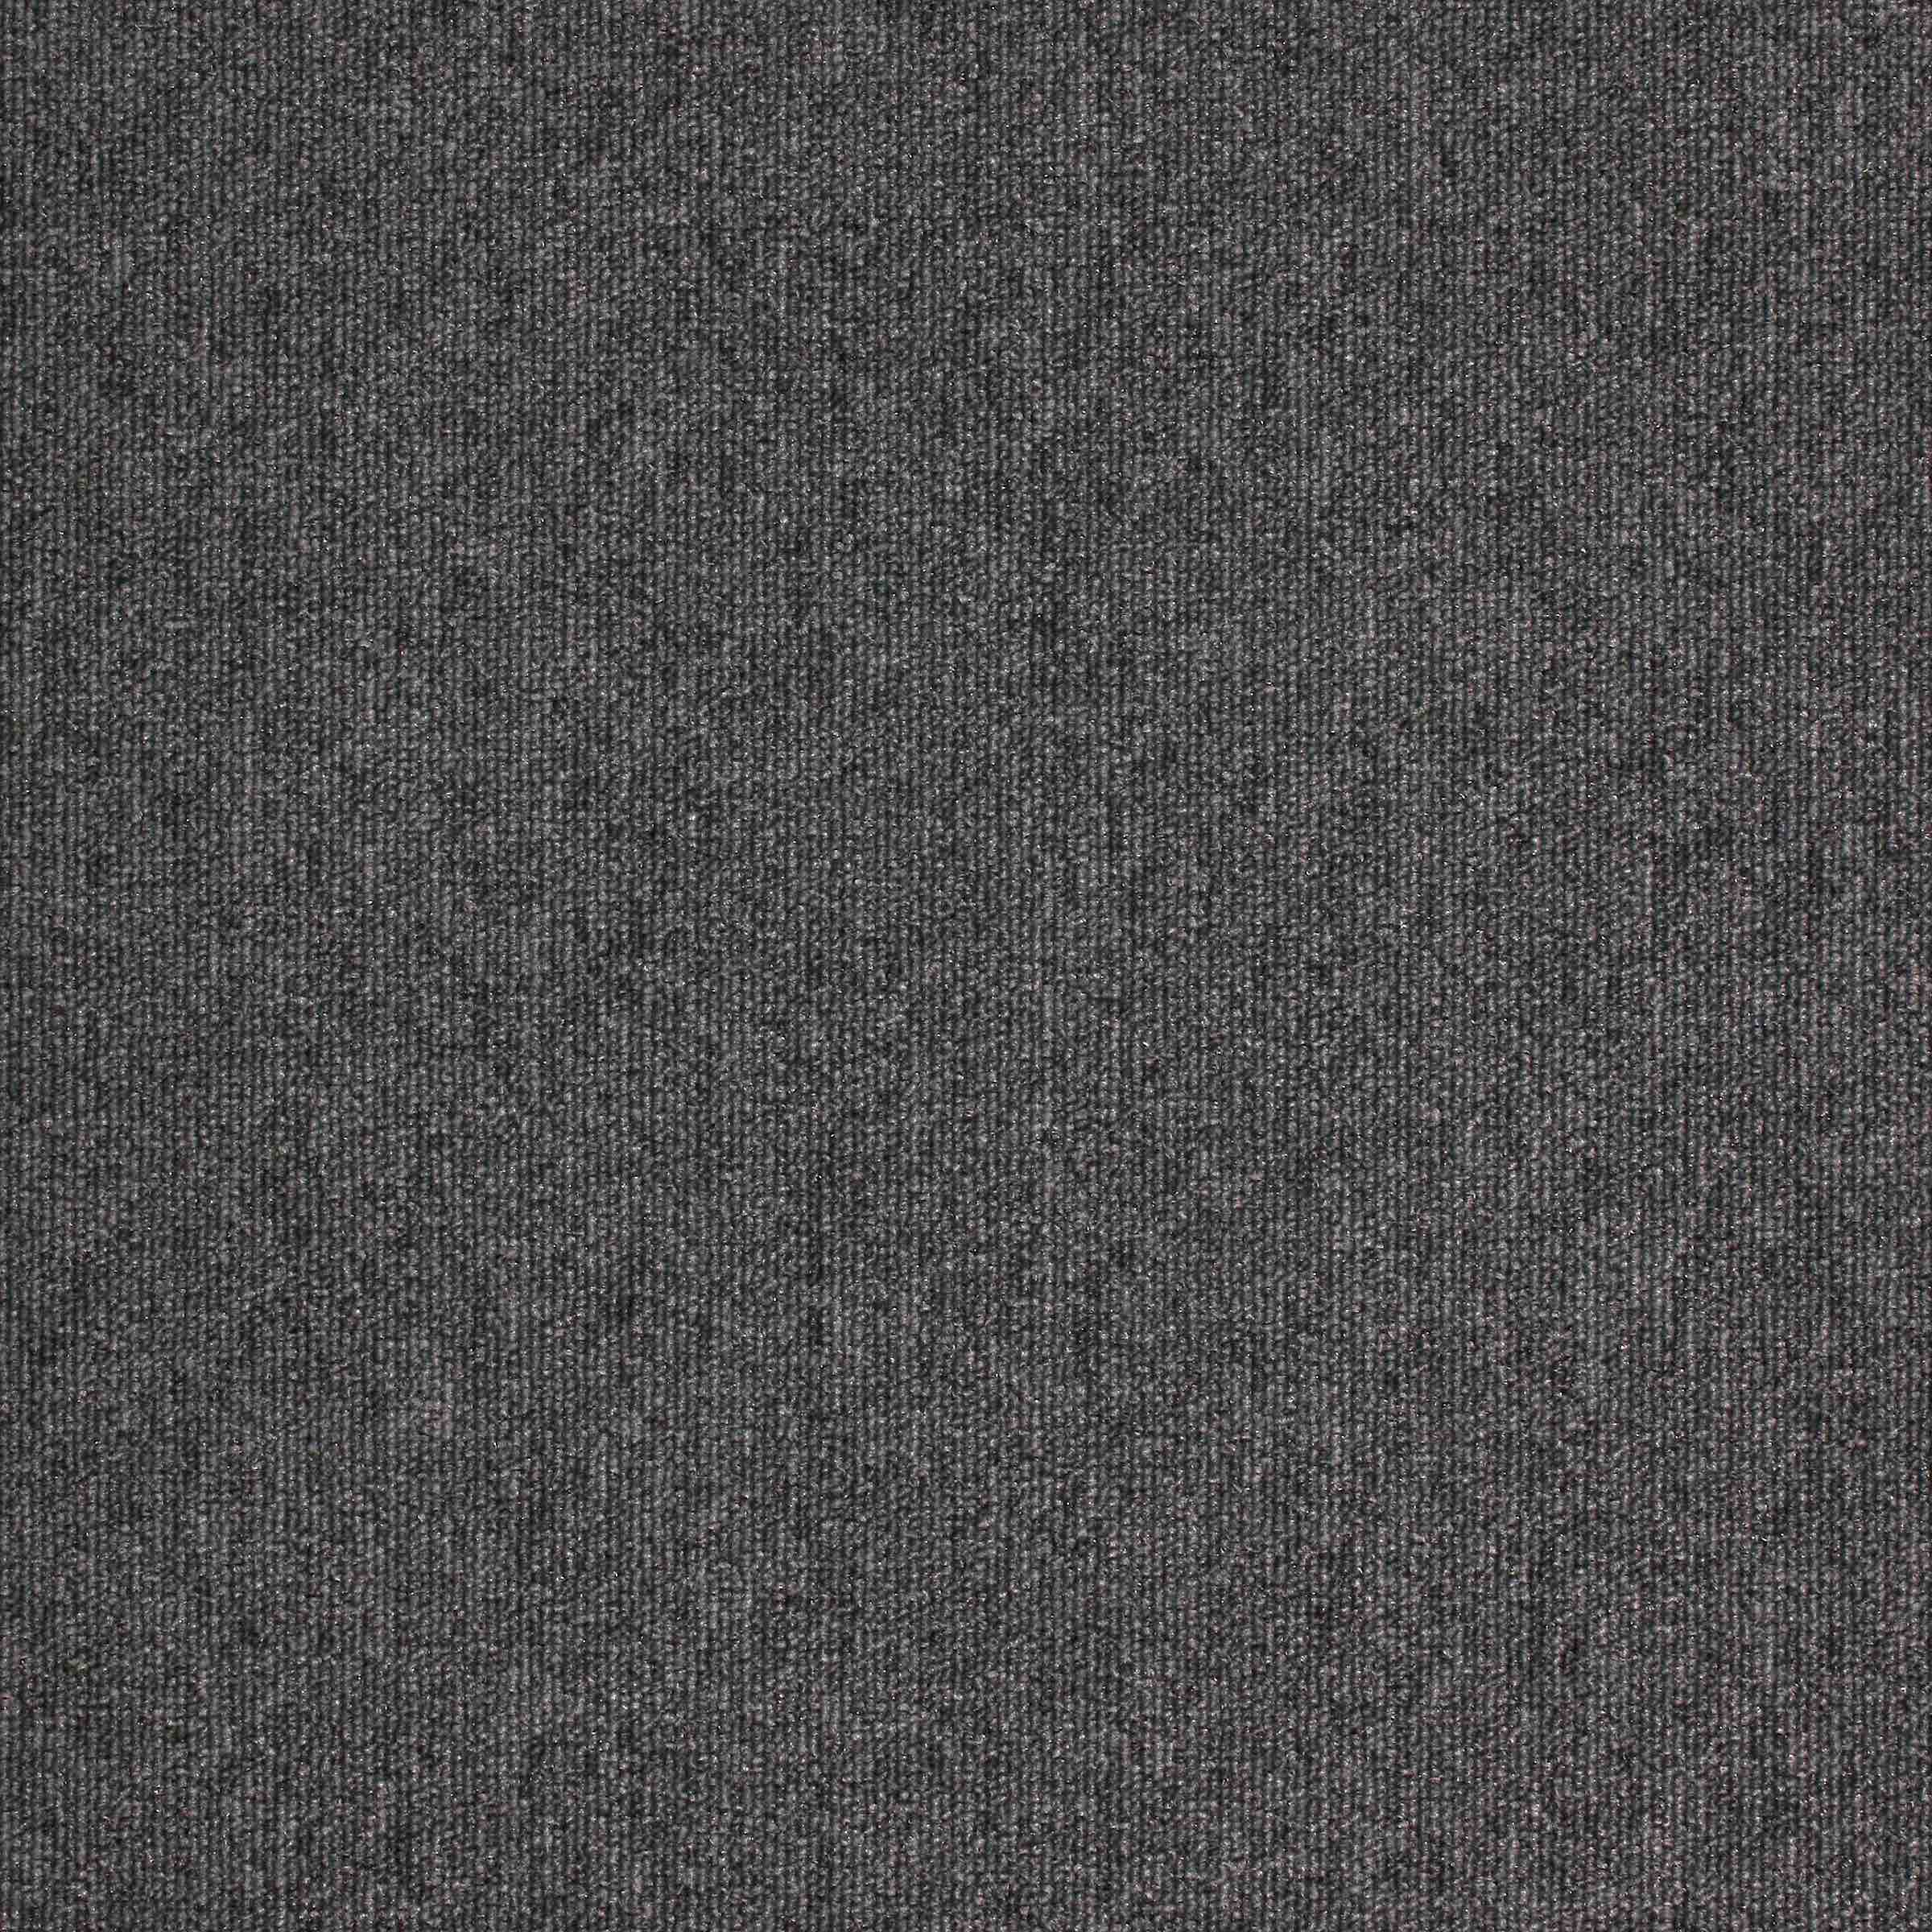 Strobe | Grey Fusion | Paragon Carpet Tiles | Commercial Carpet Tiles